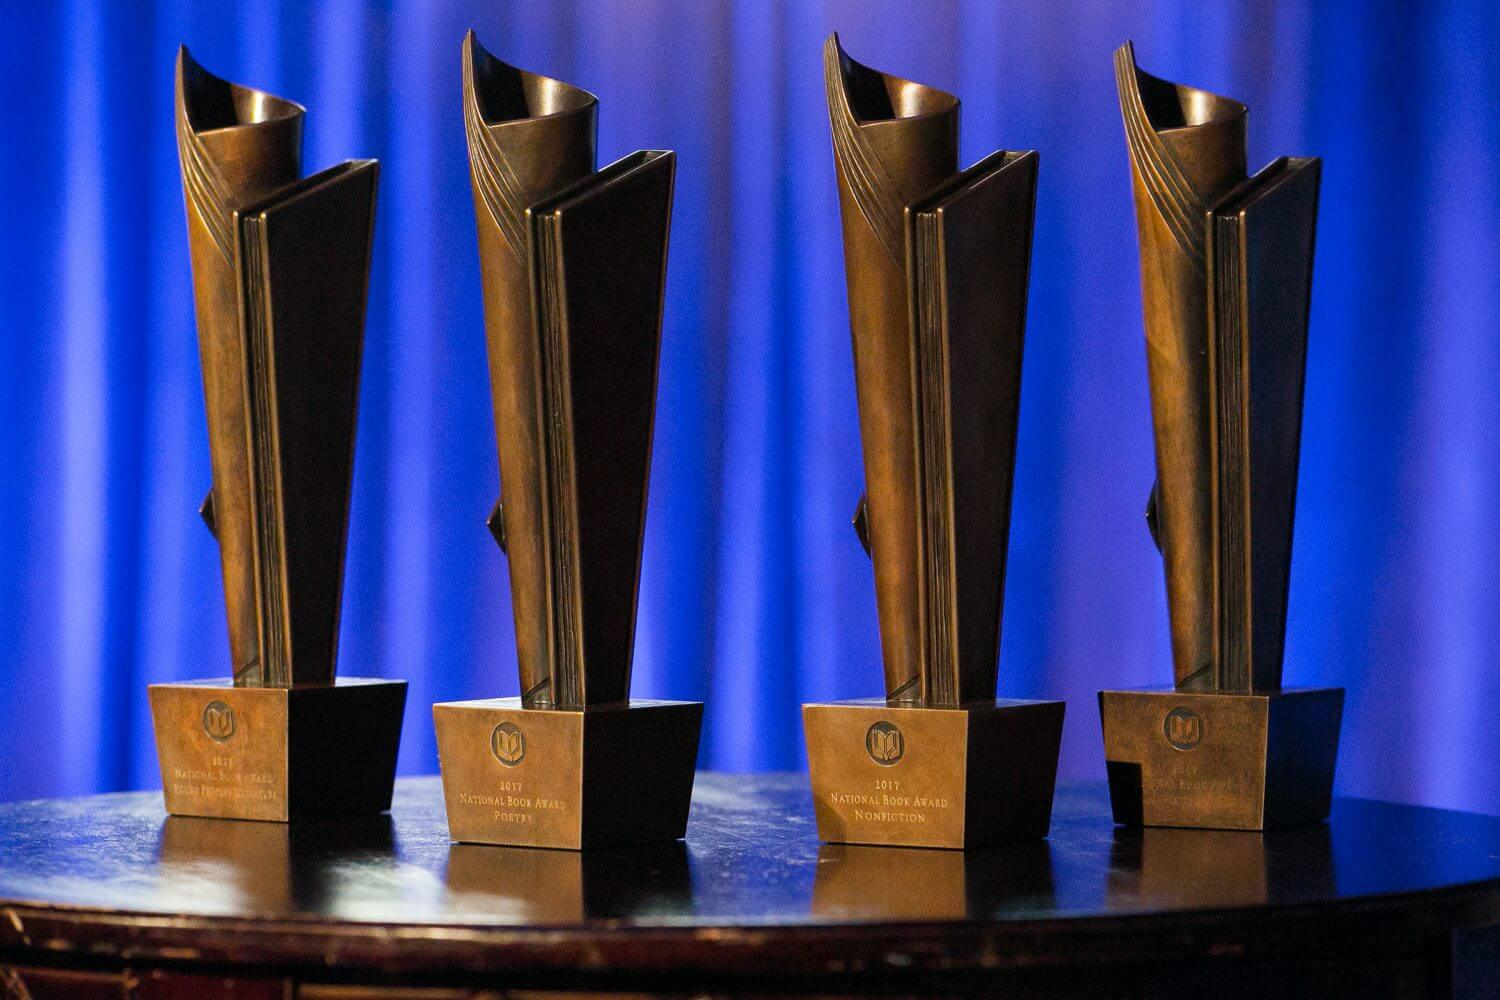 Watch the 2019 National Book Awards Ceremony live on 11/20 at 7:15PM